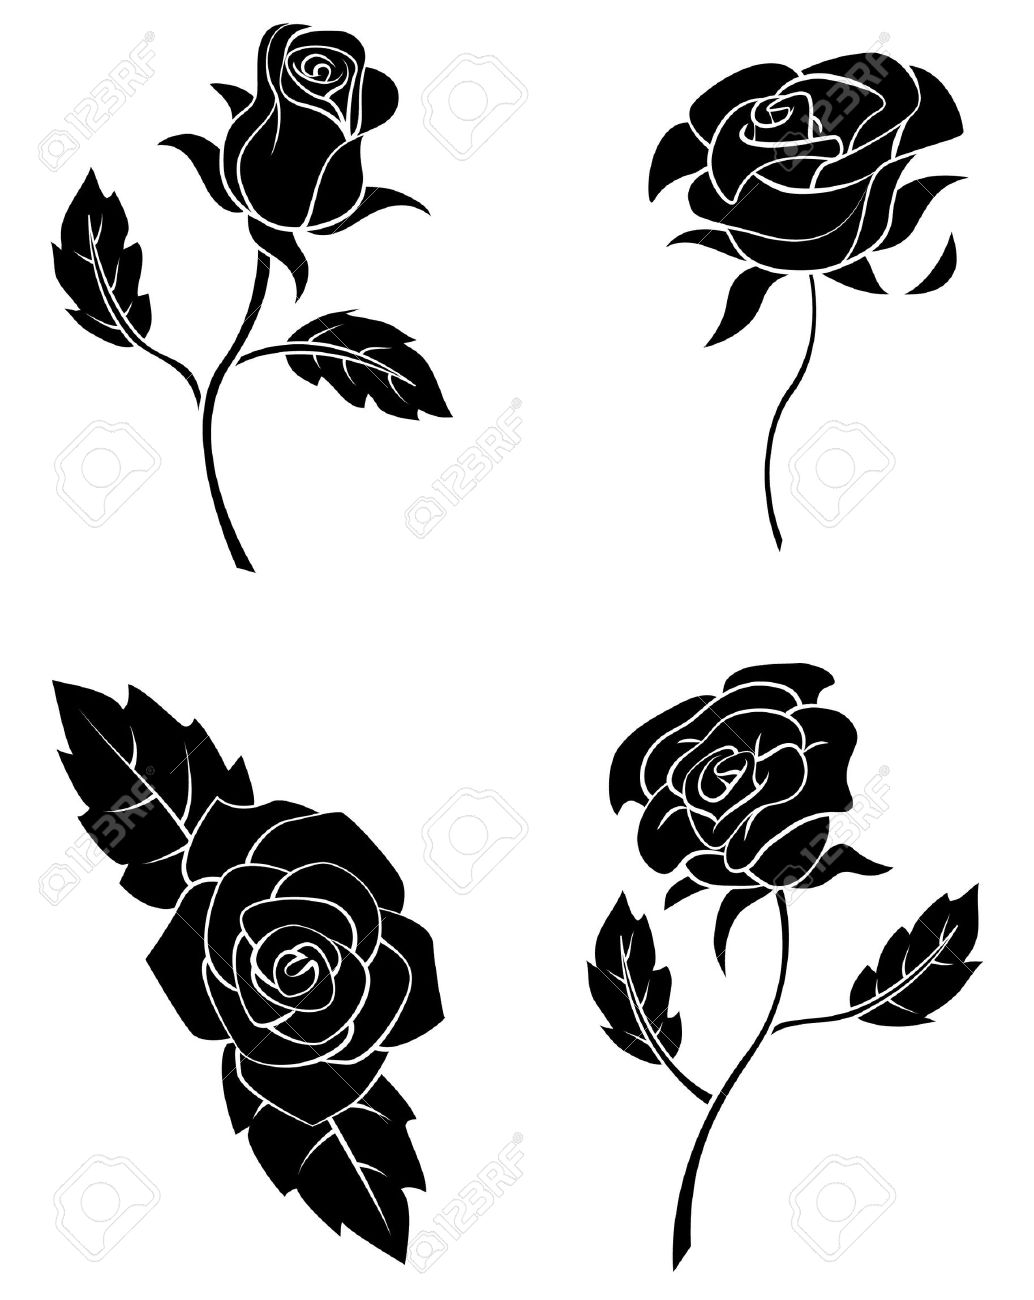 Black Silhouette Collection Of Rose Flower - 35688271